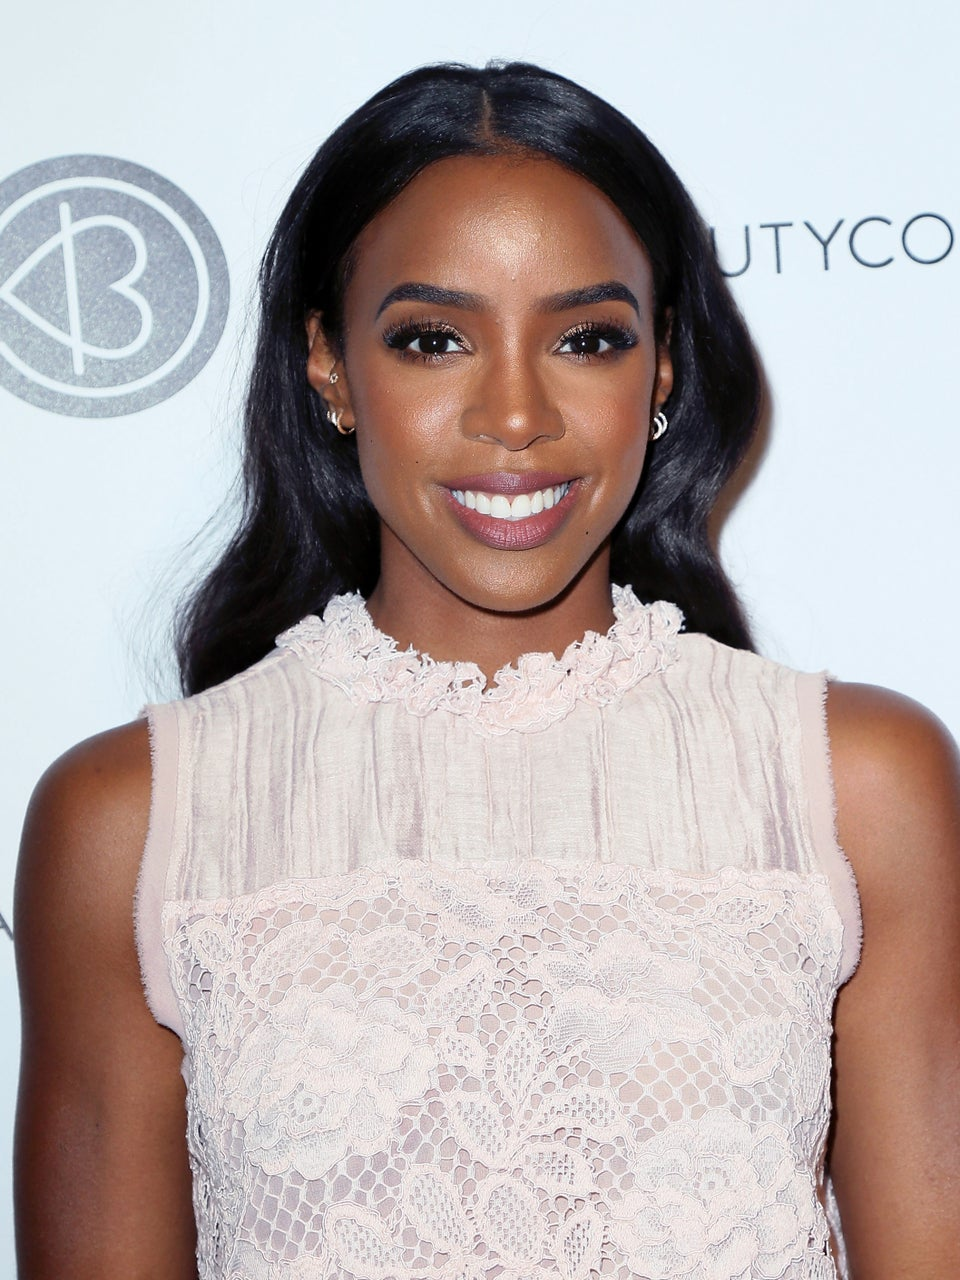 Kelly Rowland Wants New Frank Ocean Music Just As Bad As The Rest Of Us